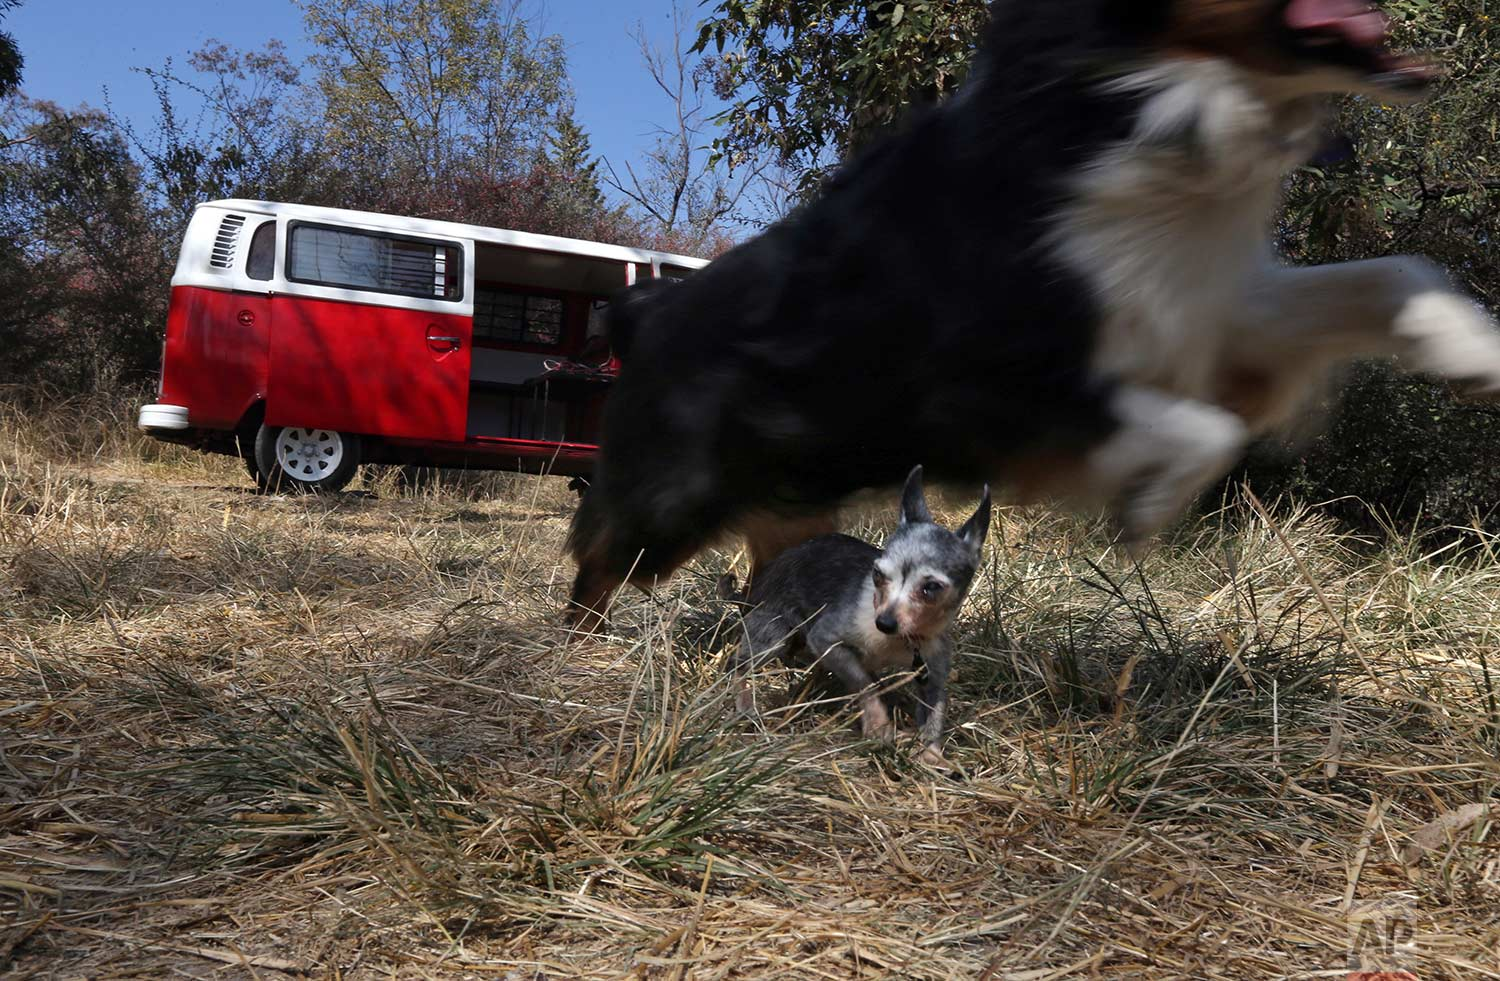 In this Wednesday, Dec. 24, 2017 photo, dogs of the Can-geles shelter run and play around the family Volkswagen van in Chapultepec forest in Mexico City. The Can-geles shelter ran by Jair Benavides and Mariam Gutierrez de Velasco is home to about 20 dogs, and a pig, and regularly take in strays, whose numbers vary because they are quickly trained and put up for adoption. (AP Photo/Marco Ugarte)